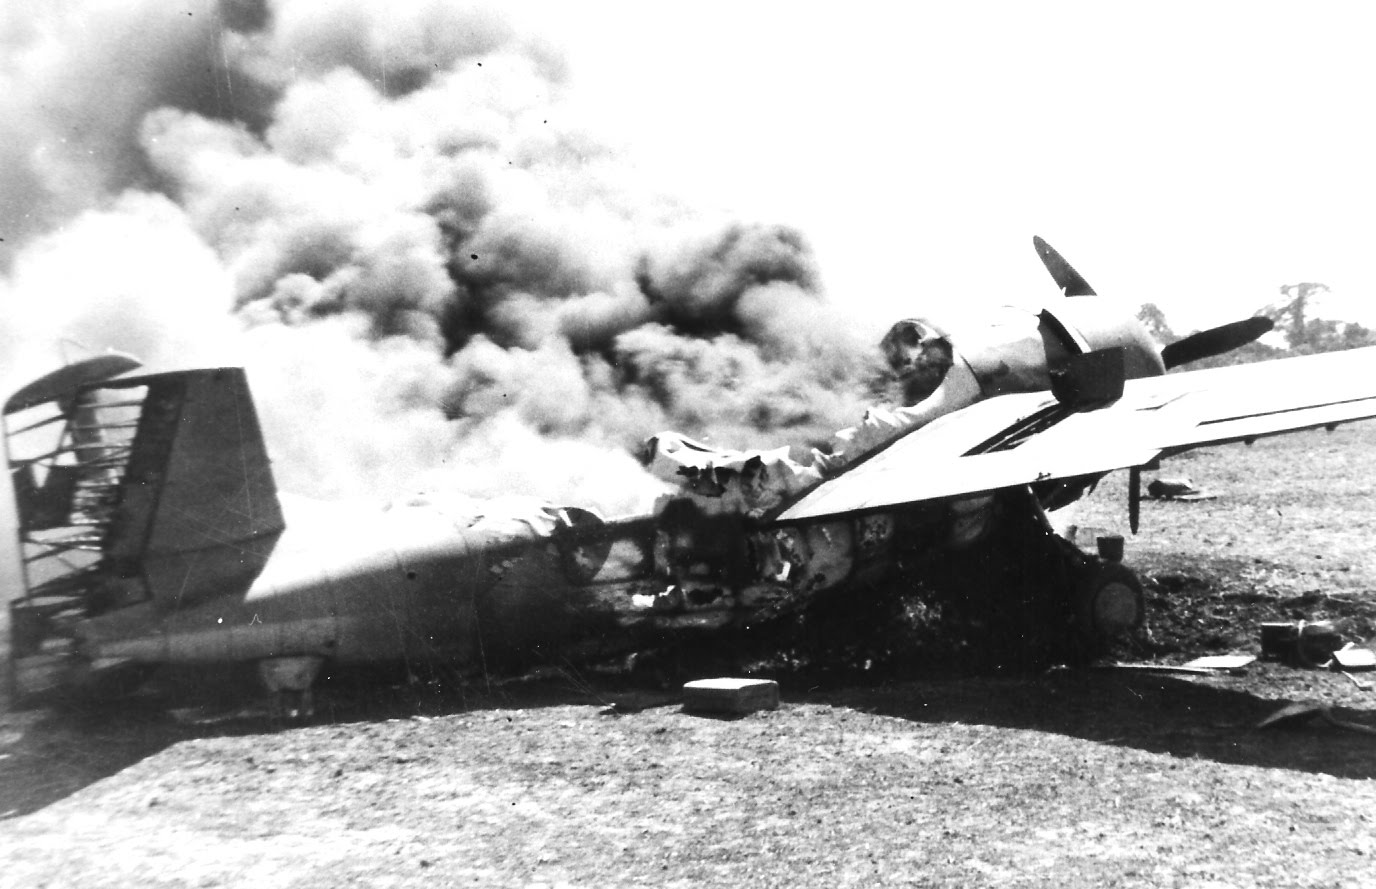 Grumman F4F 3 Wildcat destroyed during a Japanese raid Henderson Field Guadalcanal 1942 03